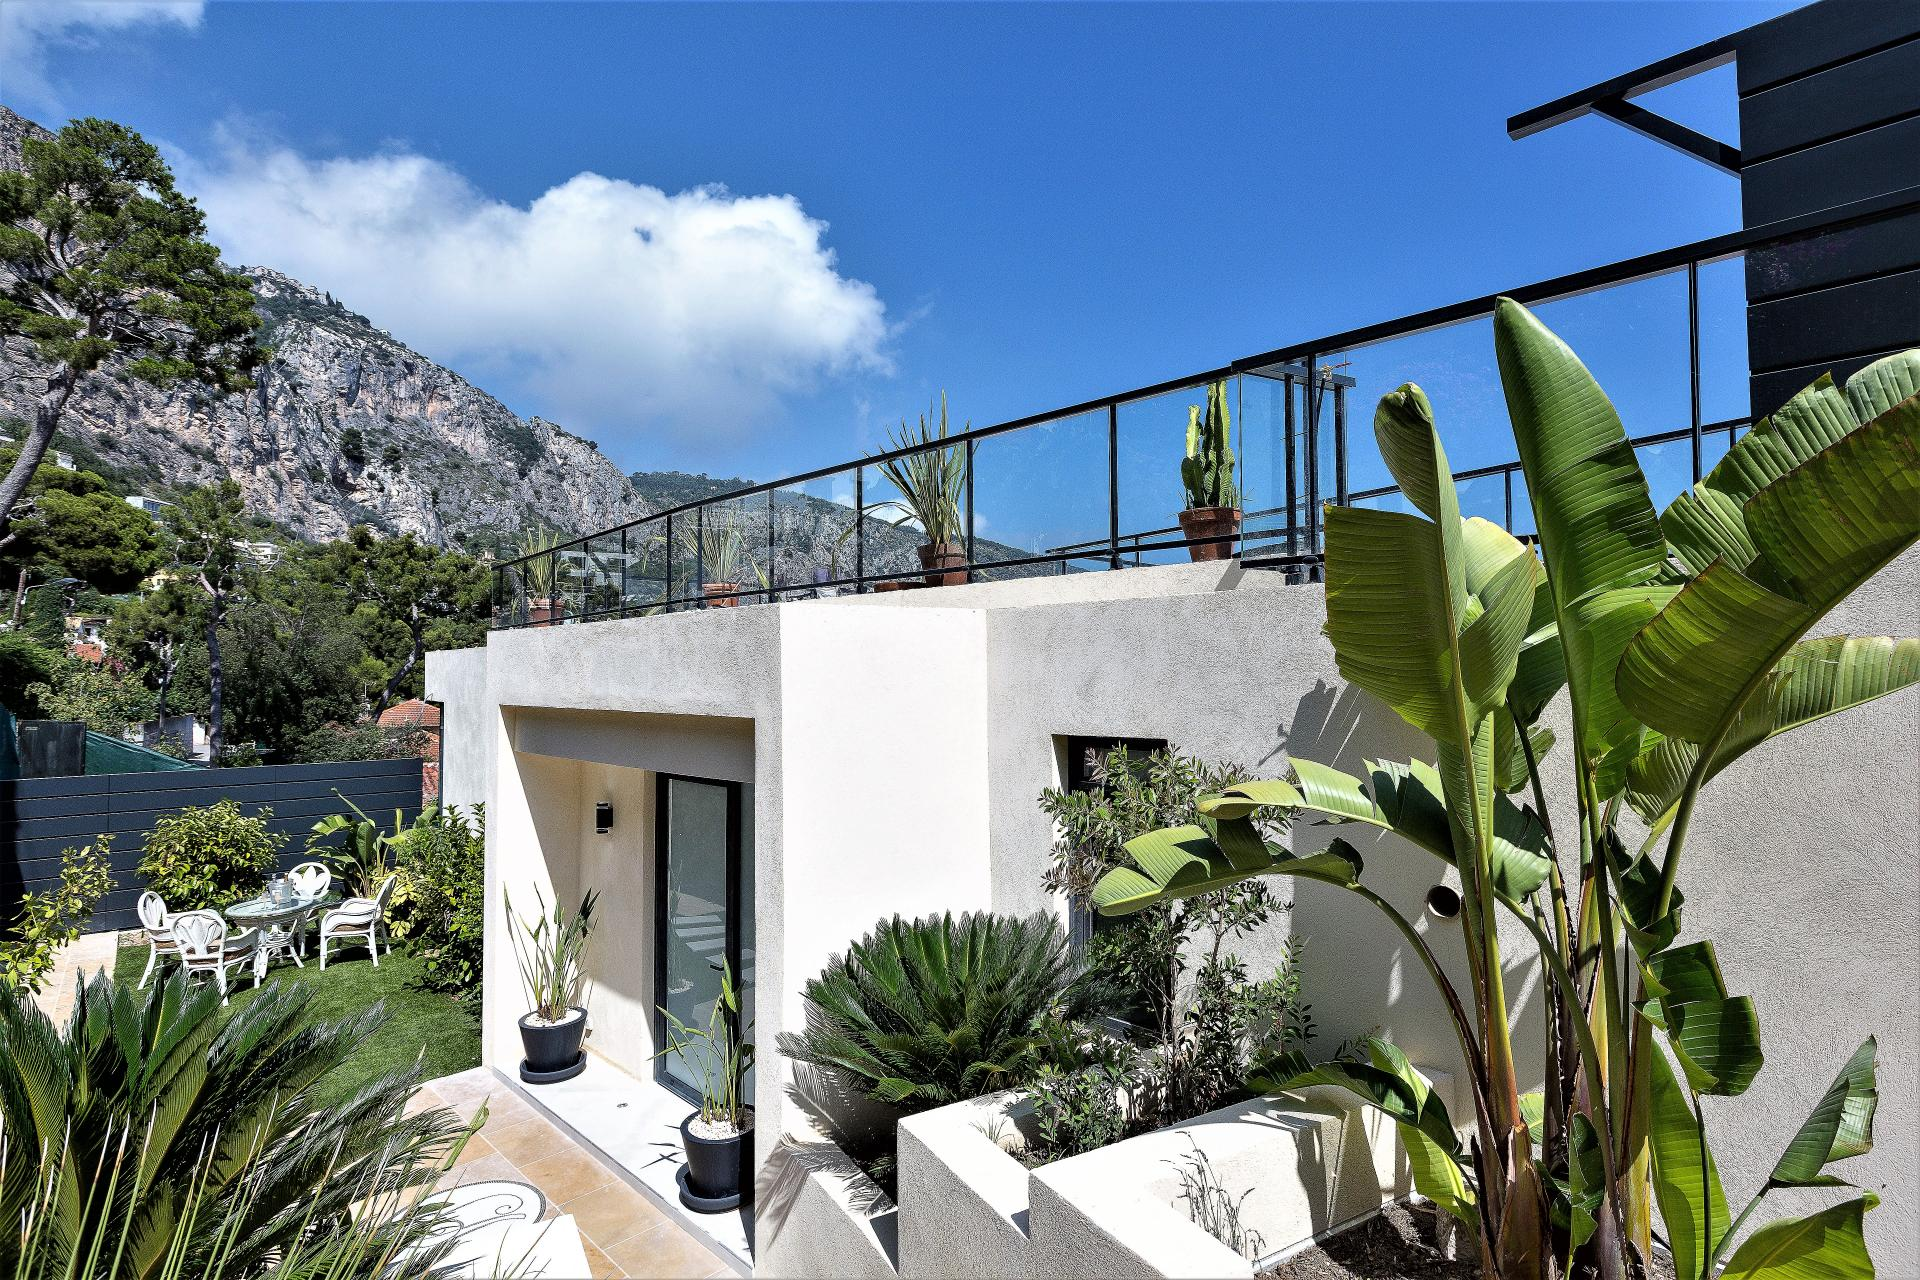 ROOF TERRACE IN VILLA INFINITY LUXURY RENTAL